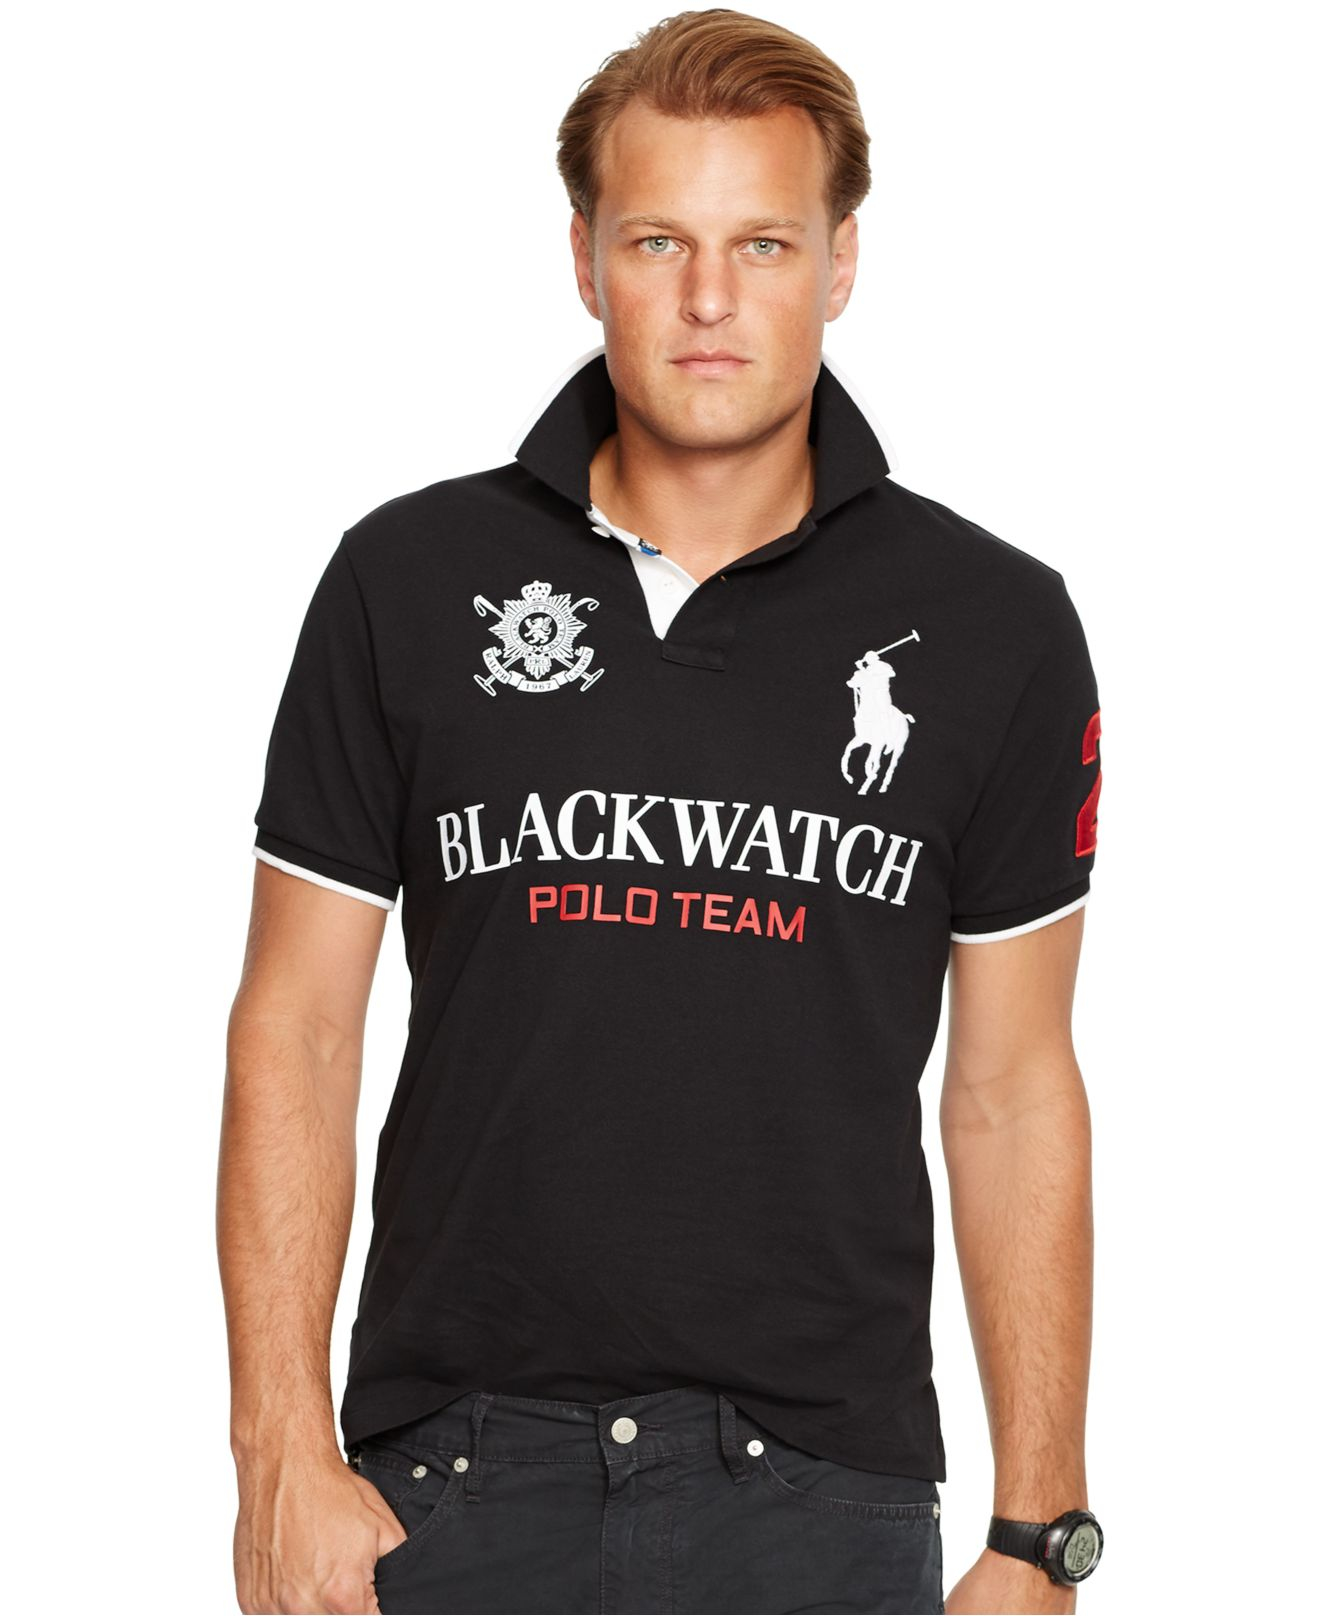 ralph lauren polo shirts for men big and tall .